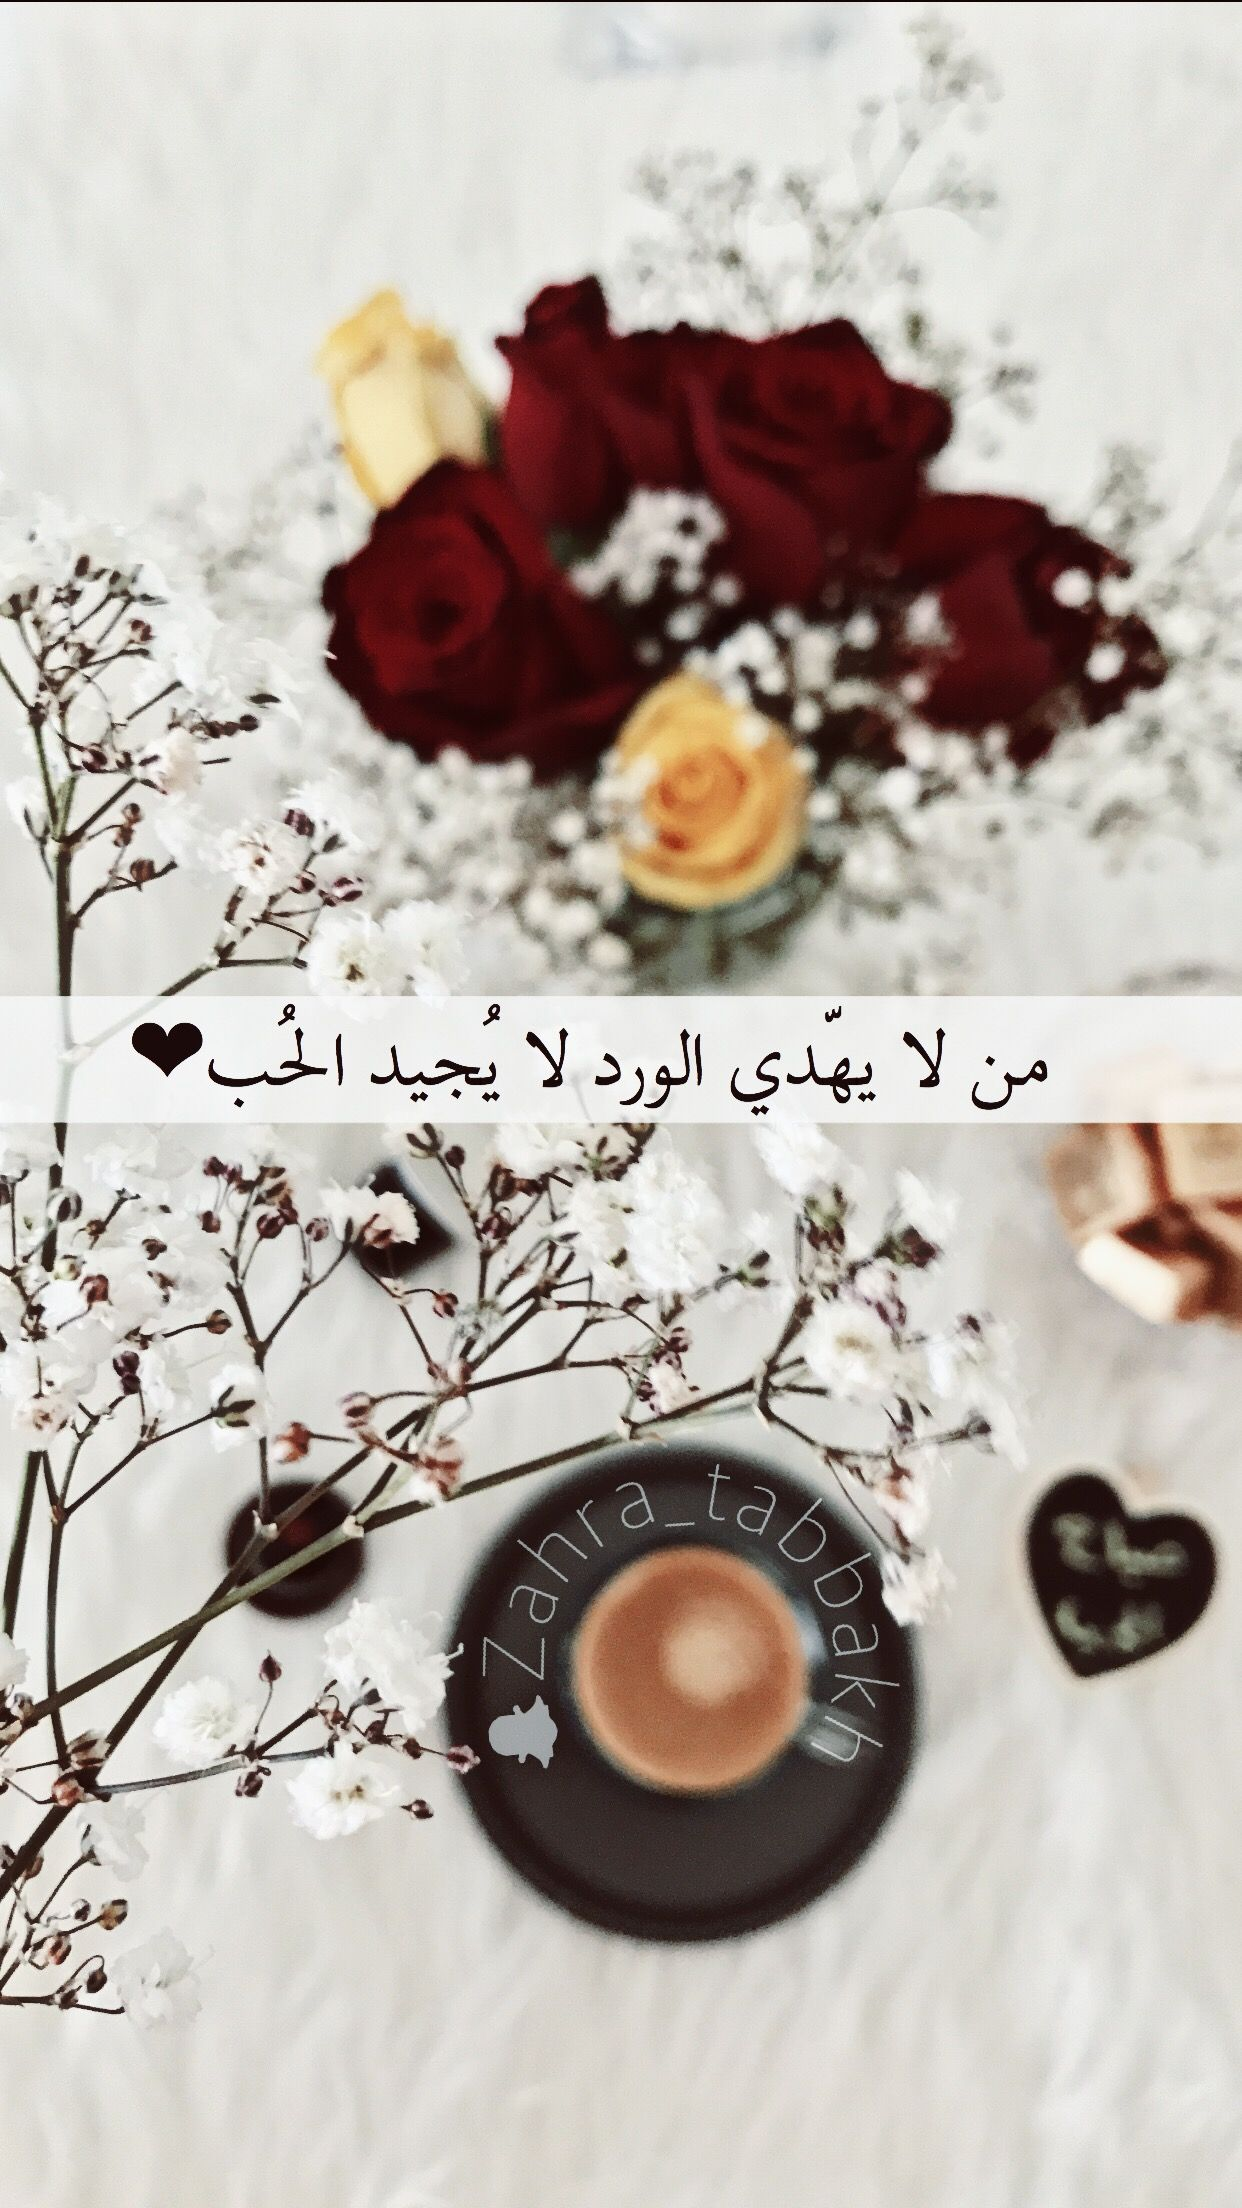 Pin By Zahra Na3ema On Arabic Words Coffee Cafe Photo Quotes Frankincense